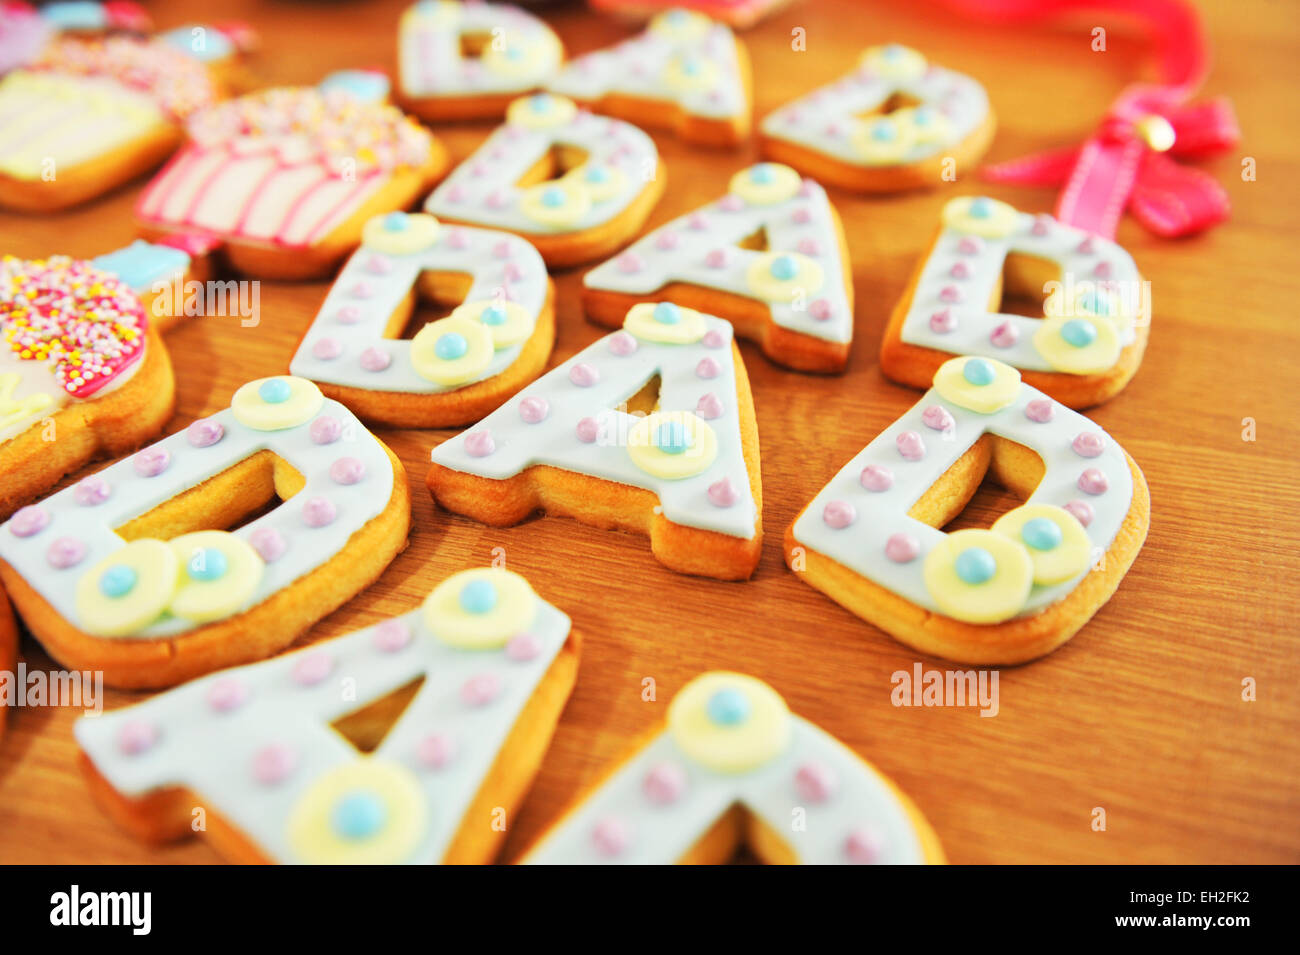 Dad Sugar biscuits for Father's Day - Stock Image